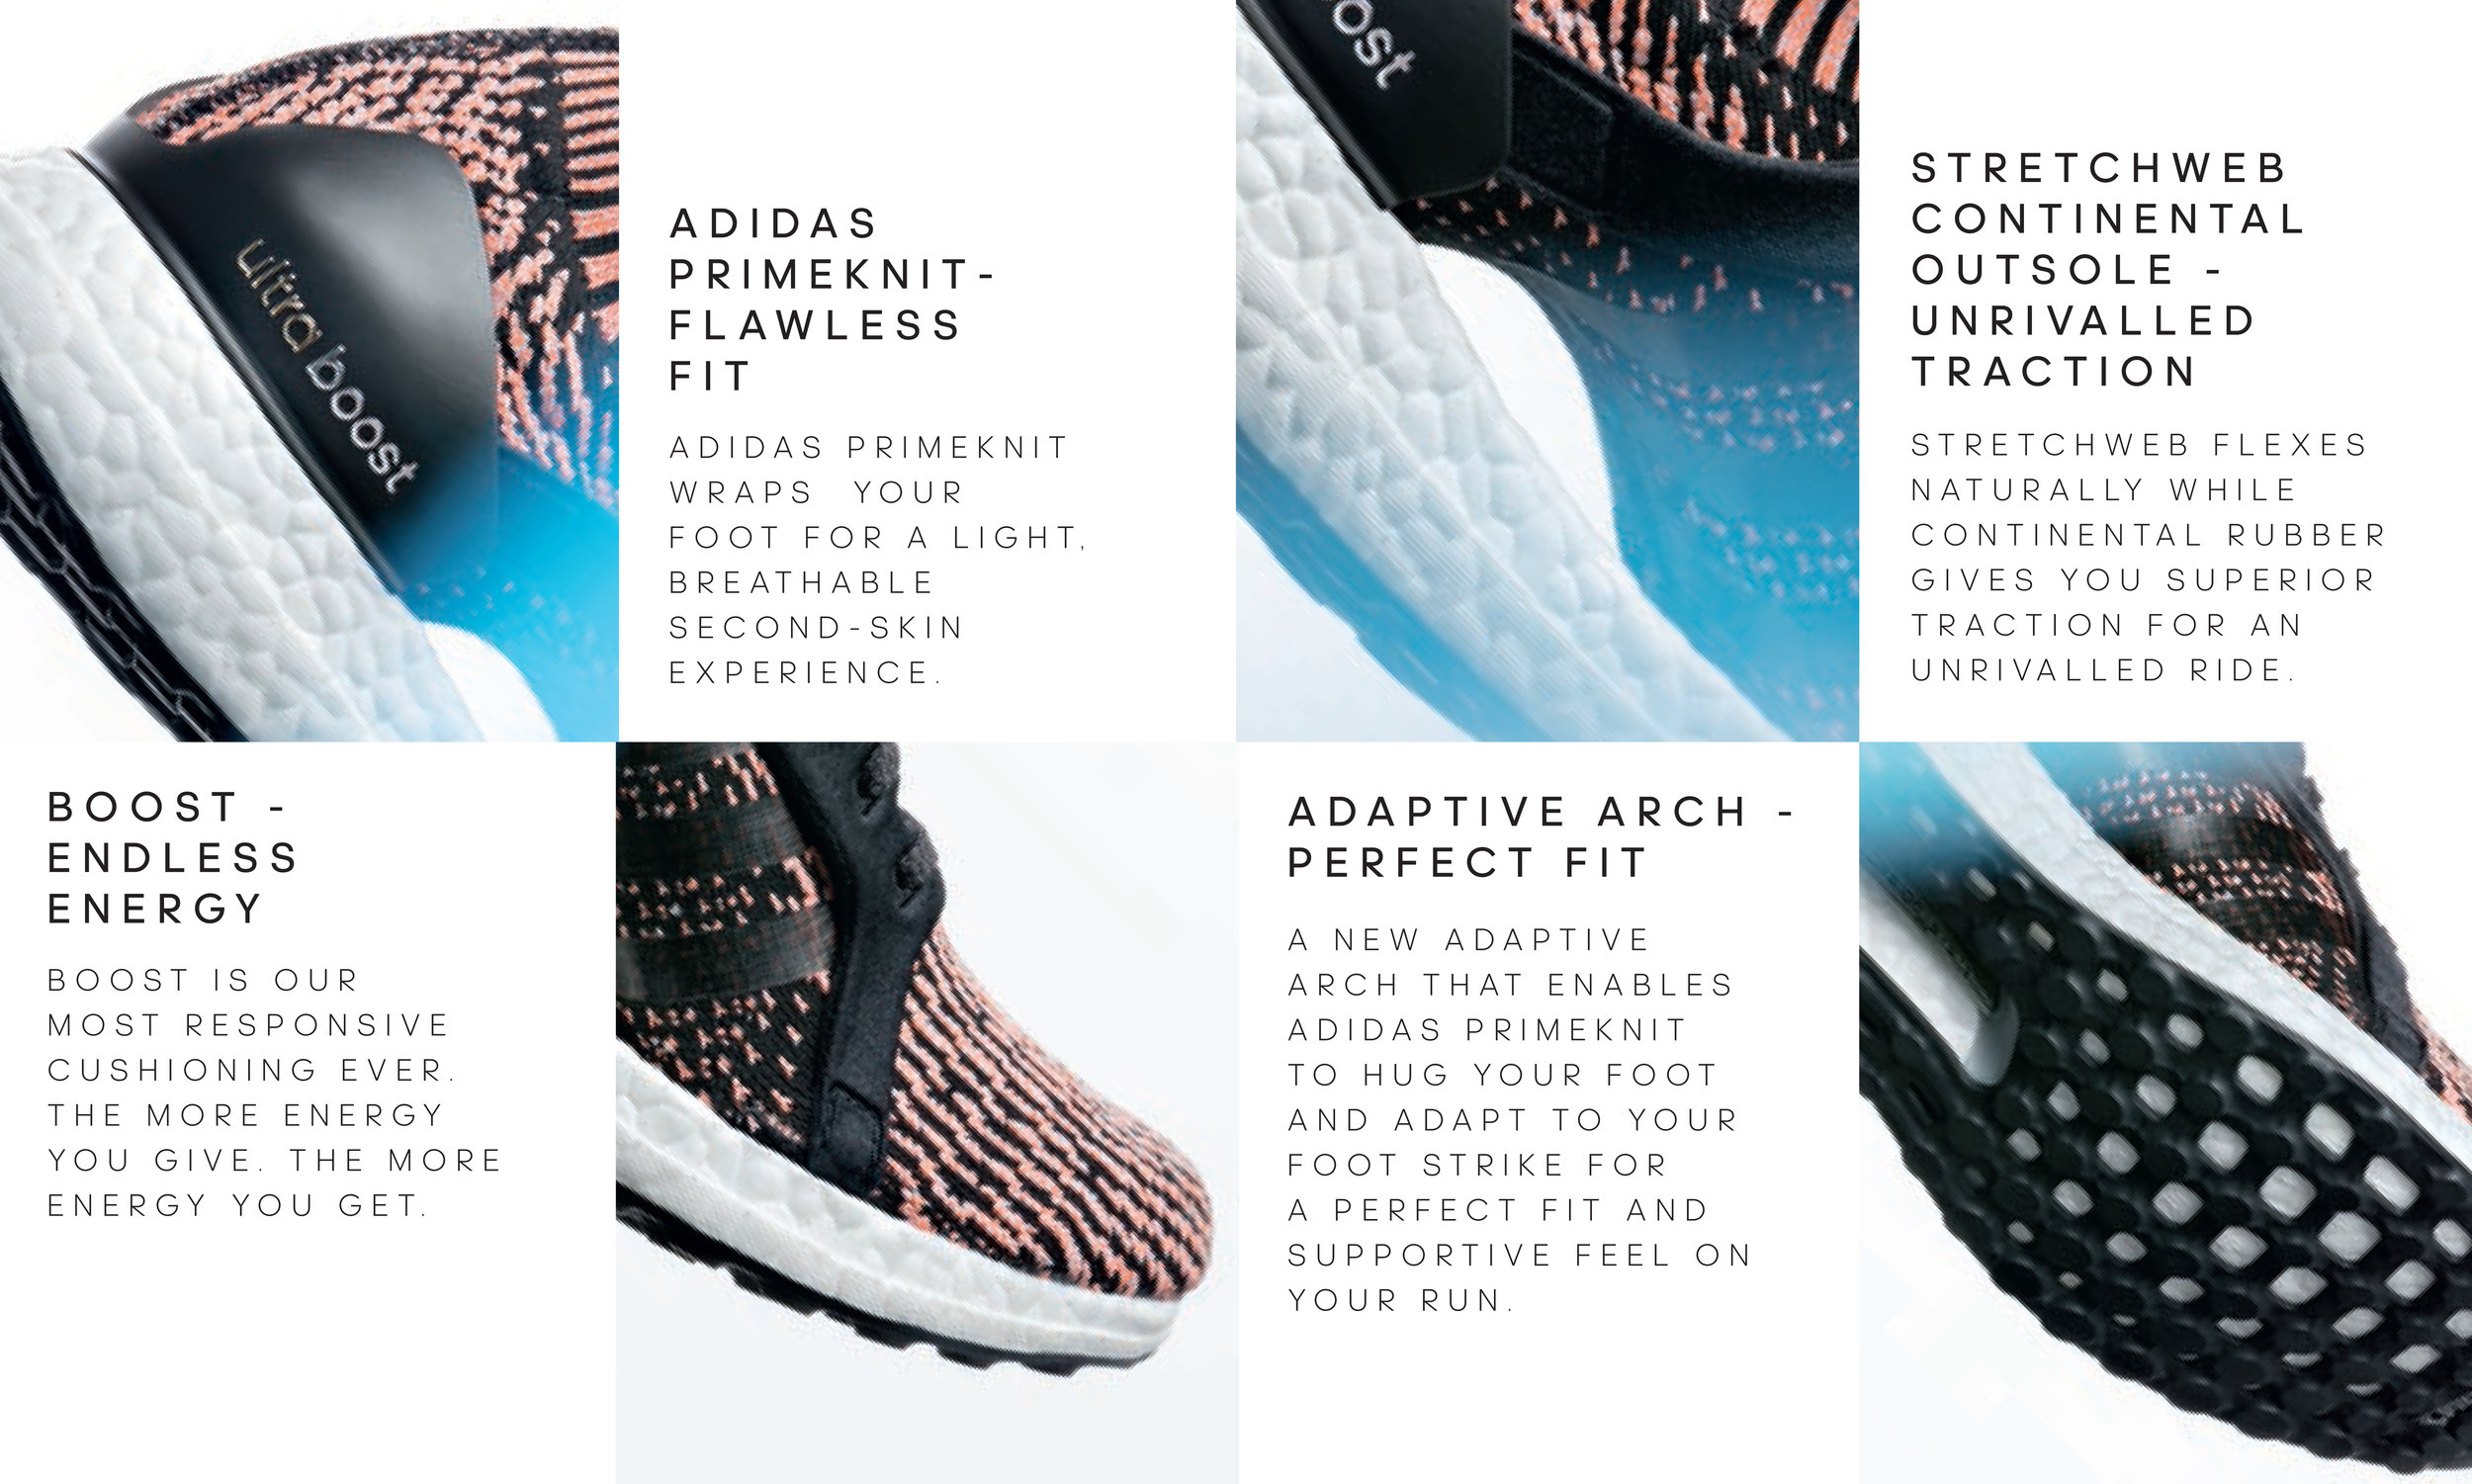 Pic from Adidas website, thank you ADIDAS!